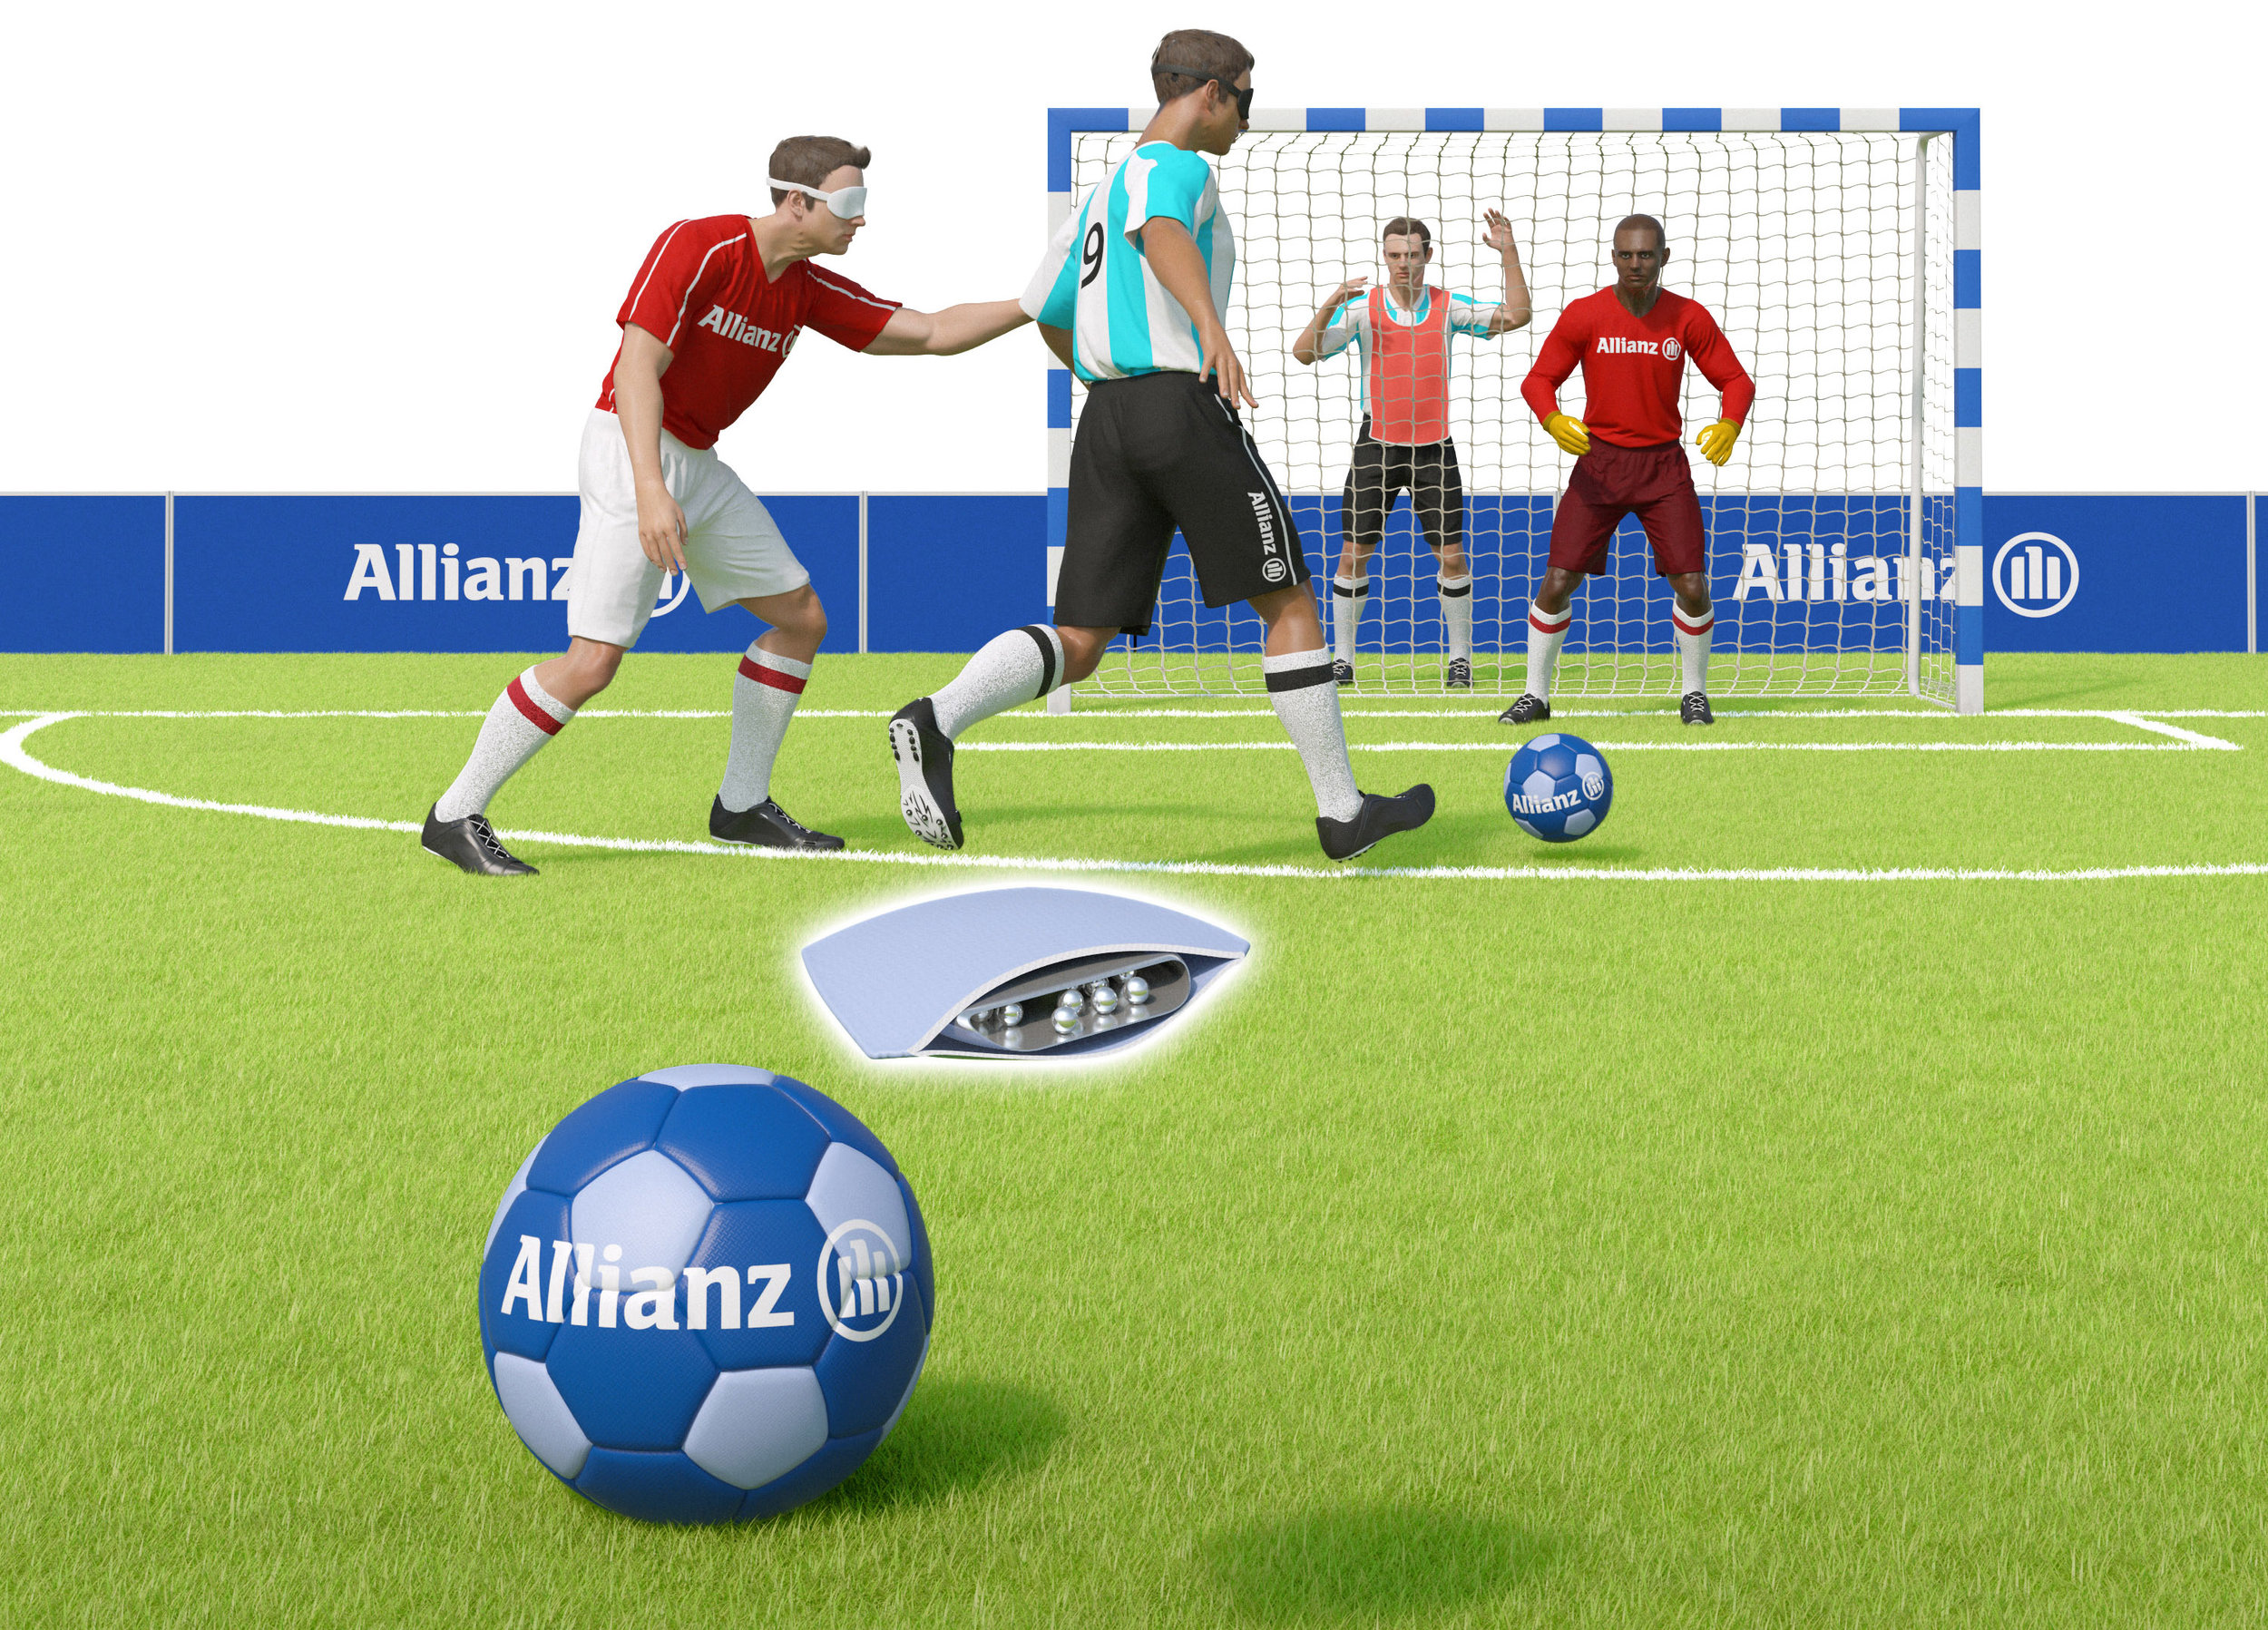 Allianz_Paralympics_Football_CBH05RZ_RGB.jpg